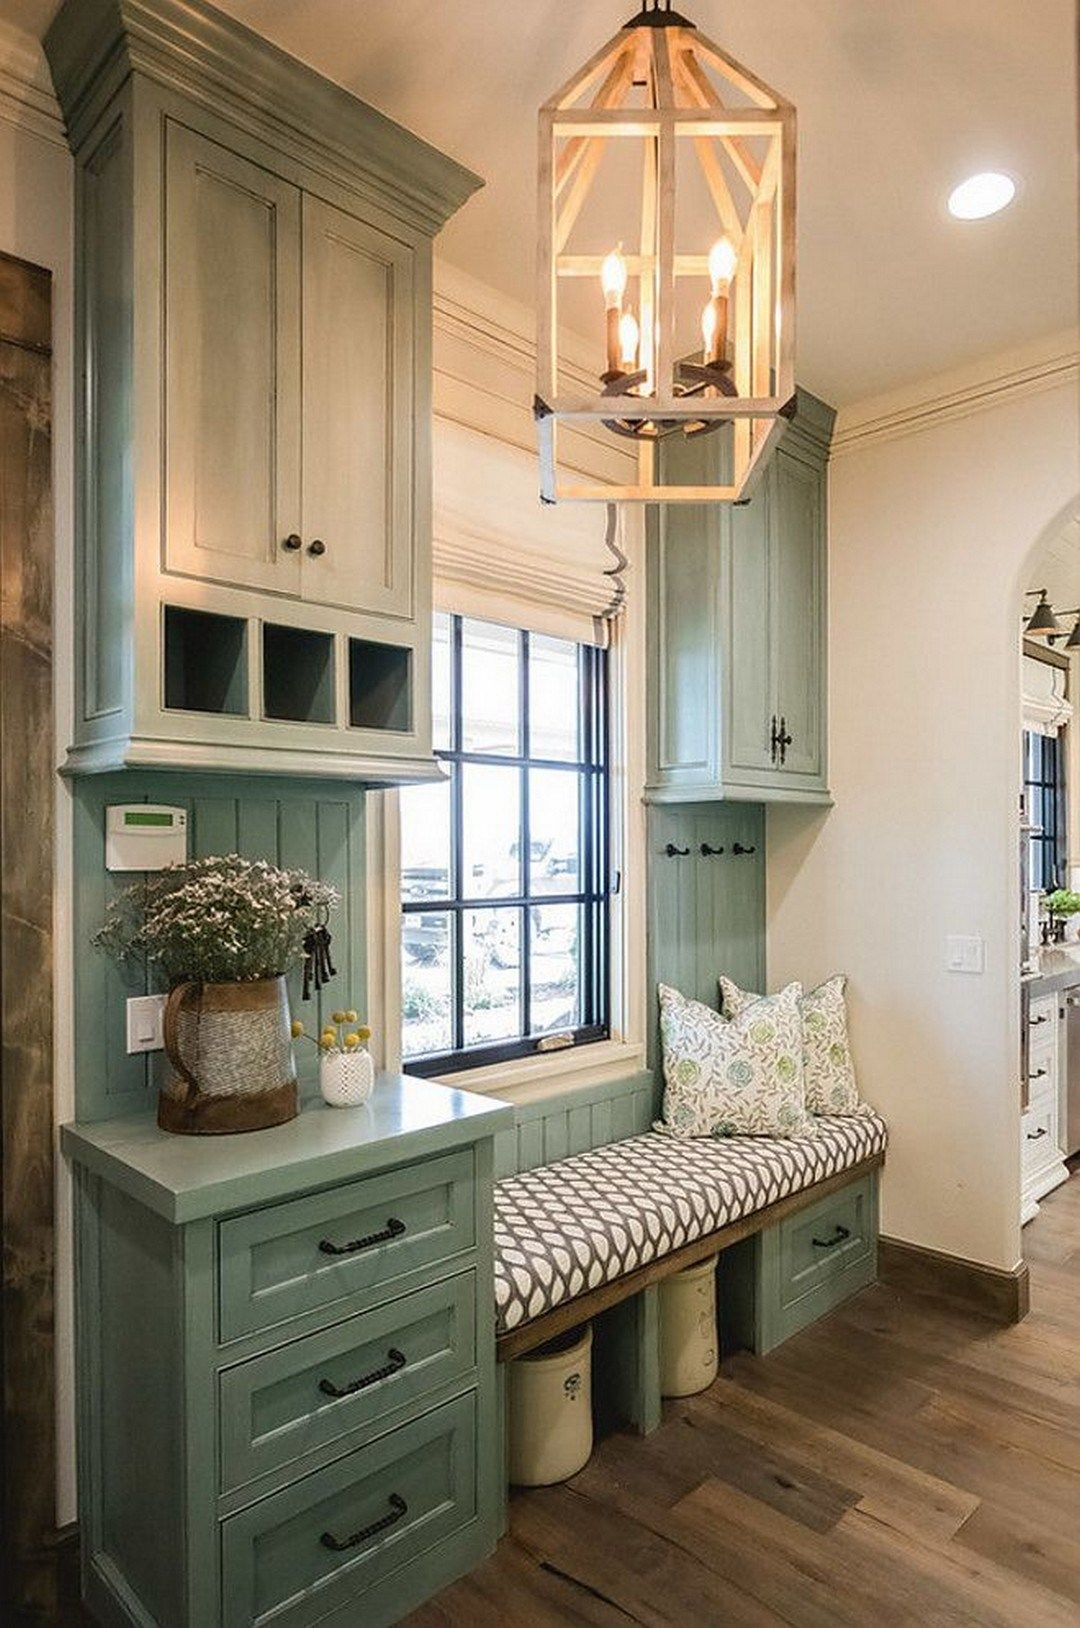 Window nook decorating ideas  farmhouse decorating style  ideas for living room and kitchen